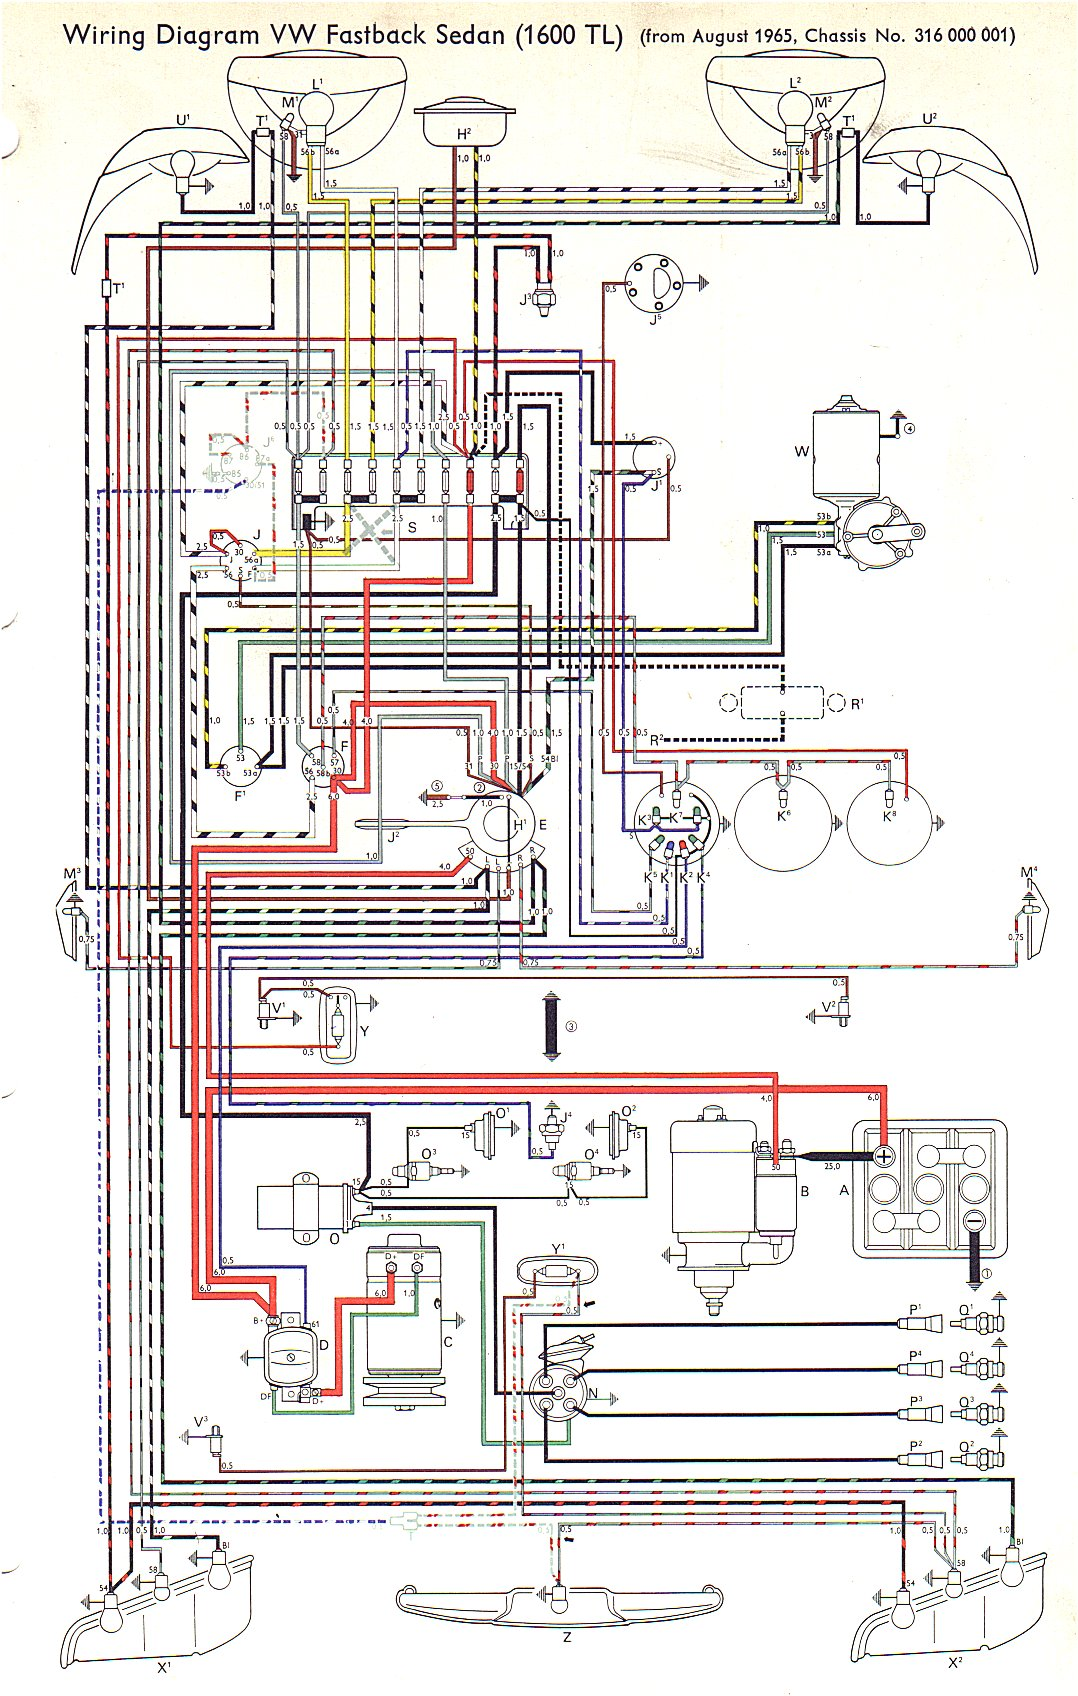 Bmw E90 Wiring Diagram Together With 05 Acura Rl Radio Wiring Diagram